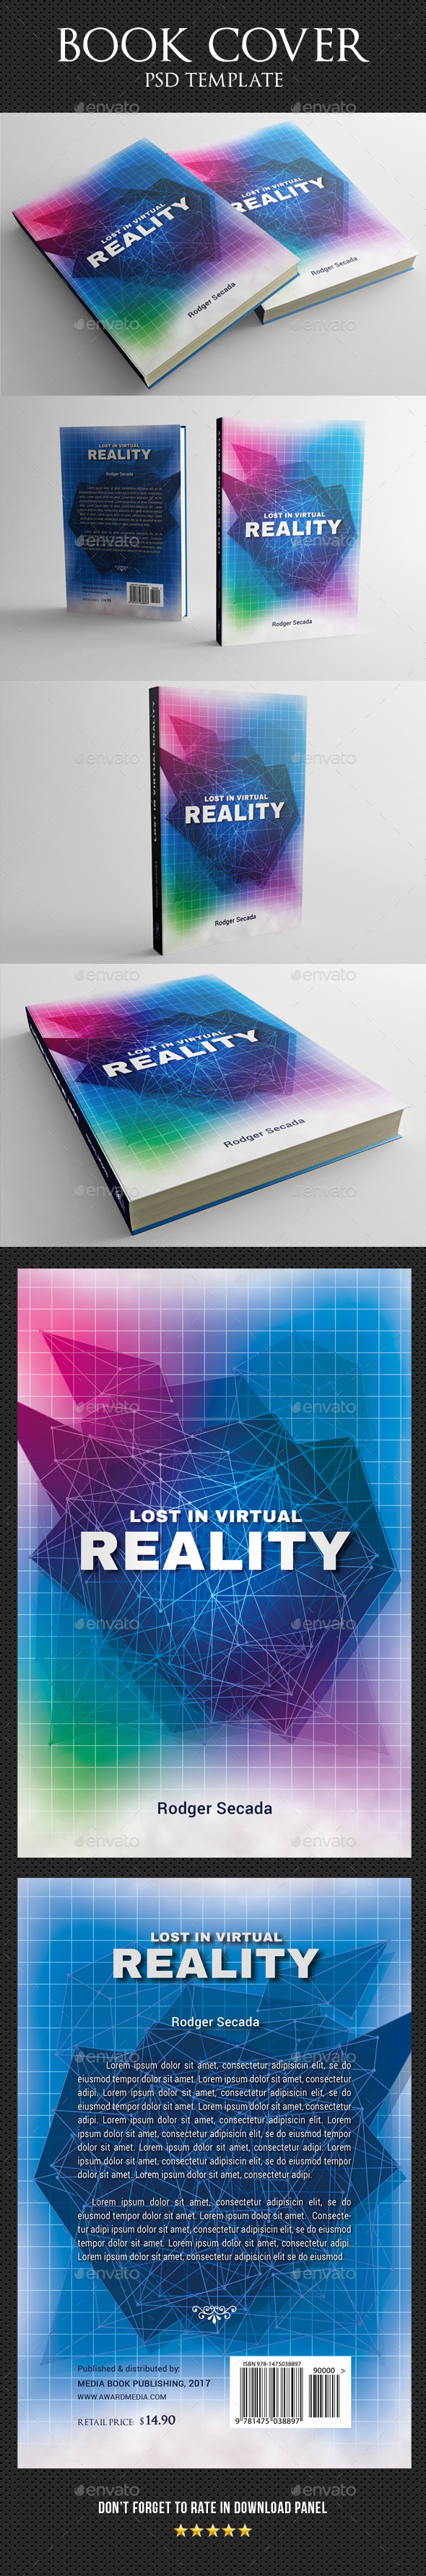 Book Cover Template 32 - Miscellaneous Print Templates